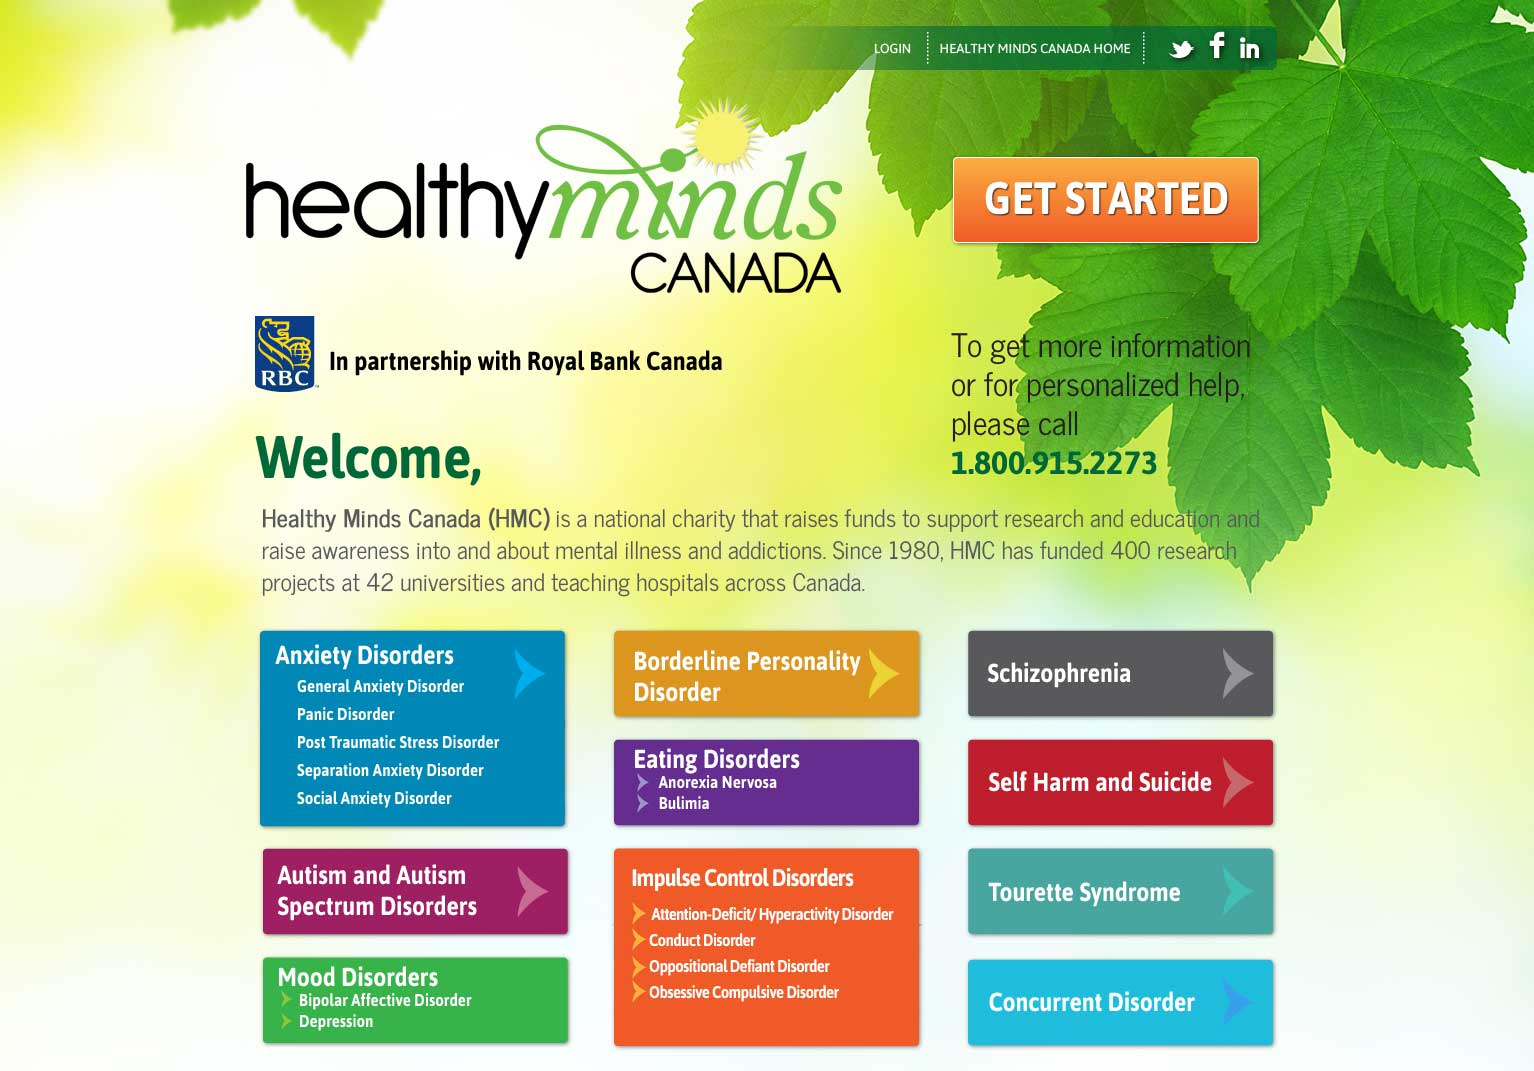 Web Based Assessment Tool for Healthy Minds Canada